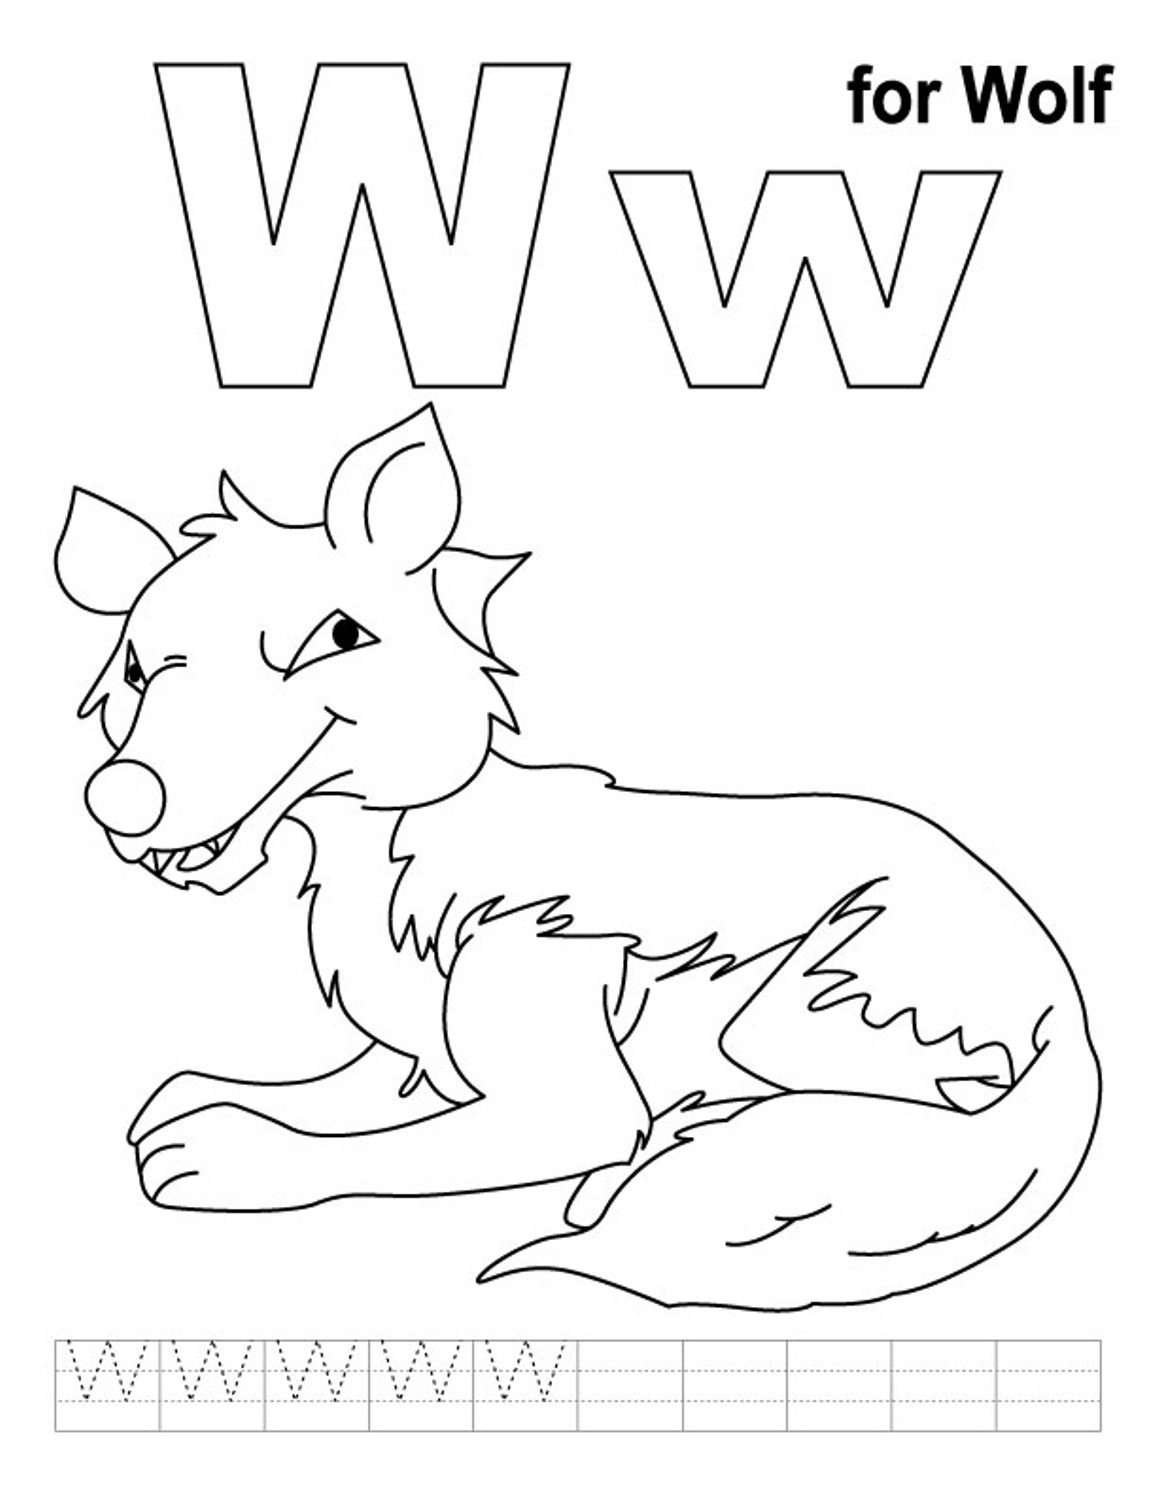 Wolf Free Alphabet Coloring Pages